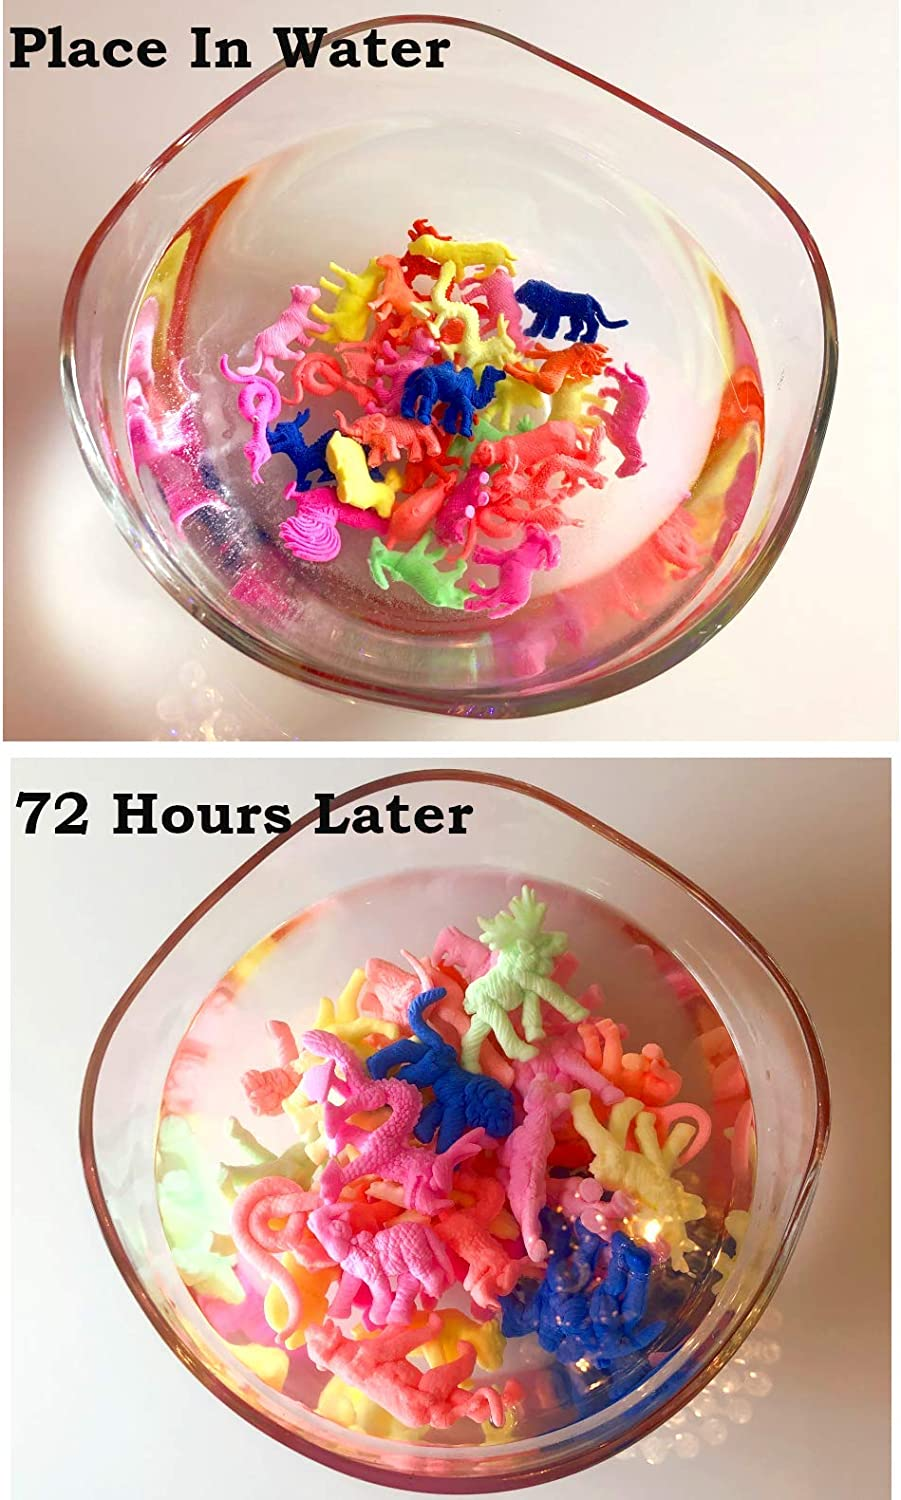 EverglowBeads Colorful Water Growing Farm /& Wild Animals Party /& Sensory Toys for Kids Pack of 32 Expandable Animals Educational